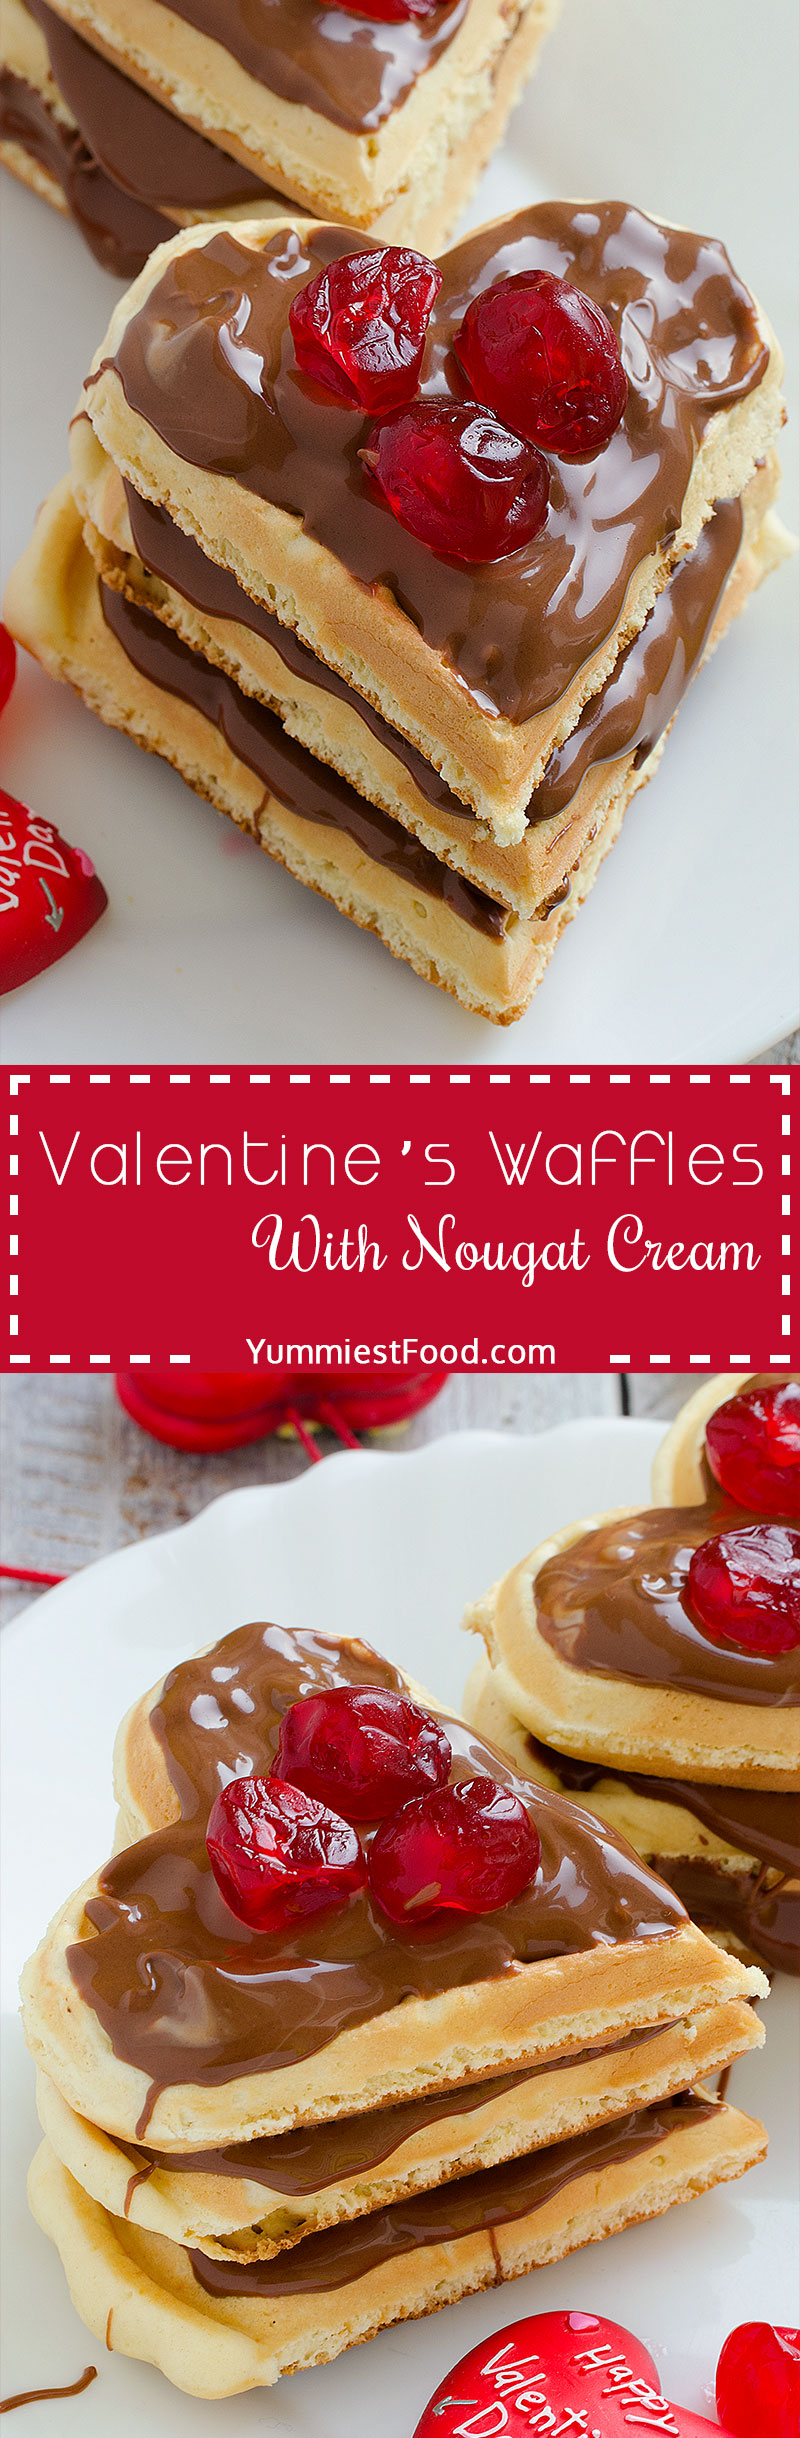 Valentine's Waffles With Nougat Cream - Heart-Shaped